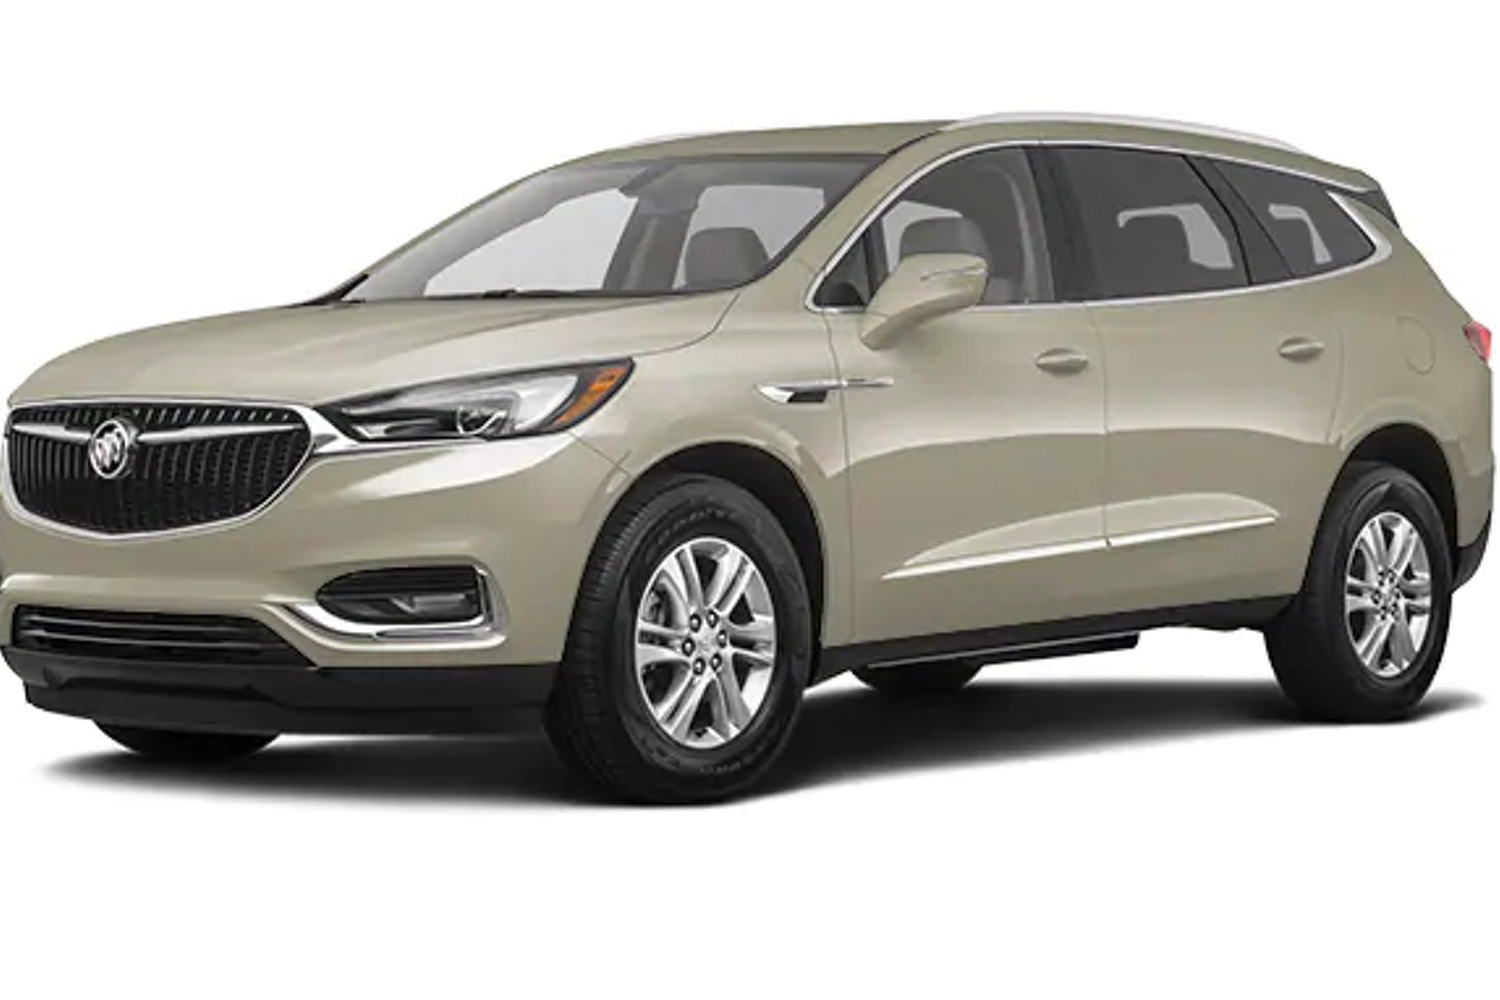 2020 Buick Enclave Exterior Colors | Gm Authority 2022 Buick Enclave Avenir Release Date, Features, Colors